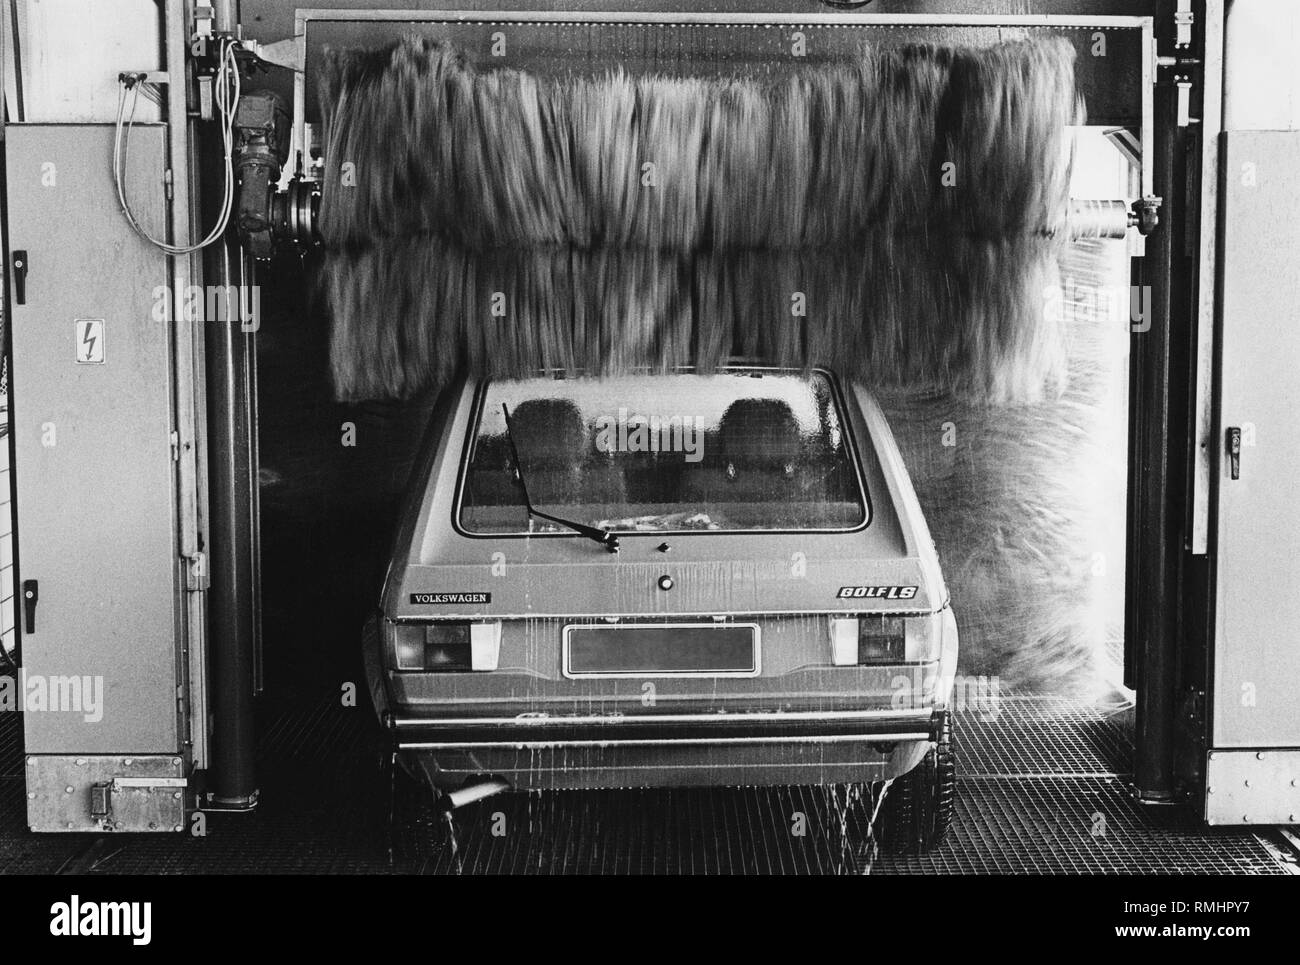 A VW Golf LS in a car wash. - Stock Image